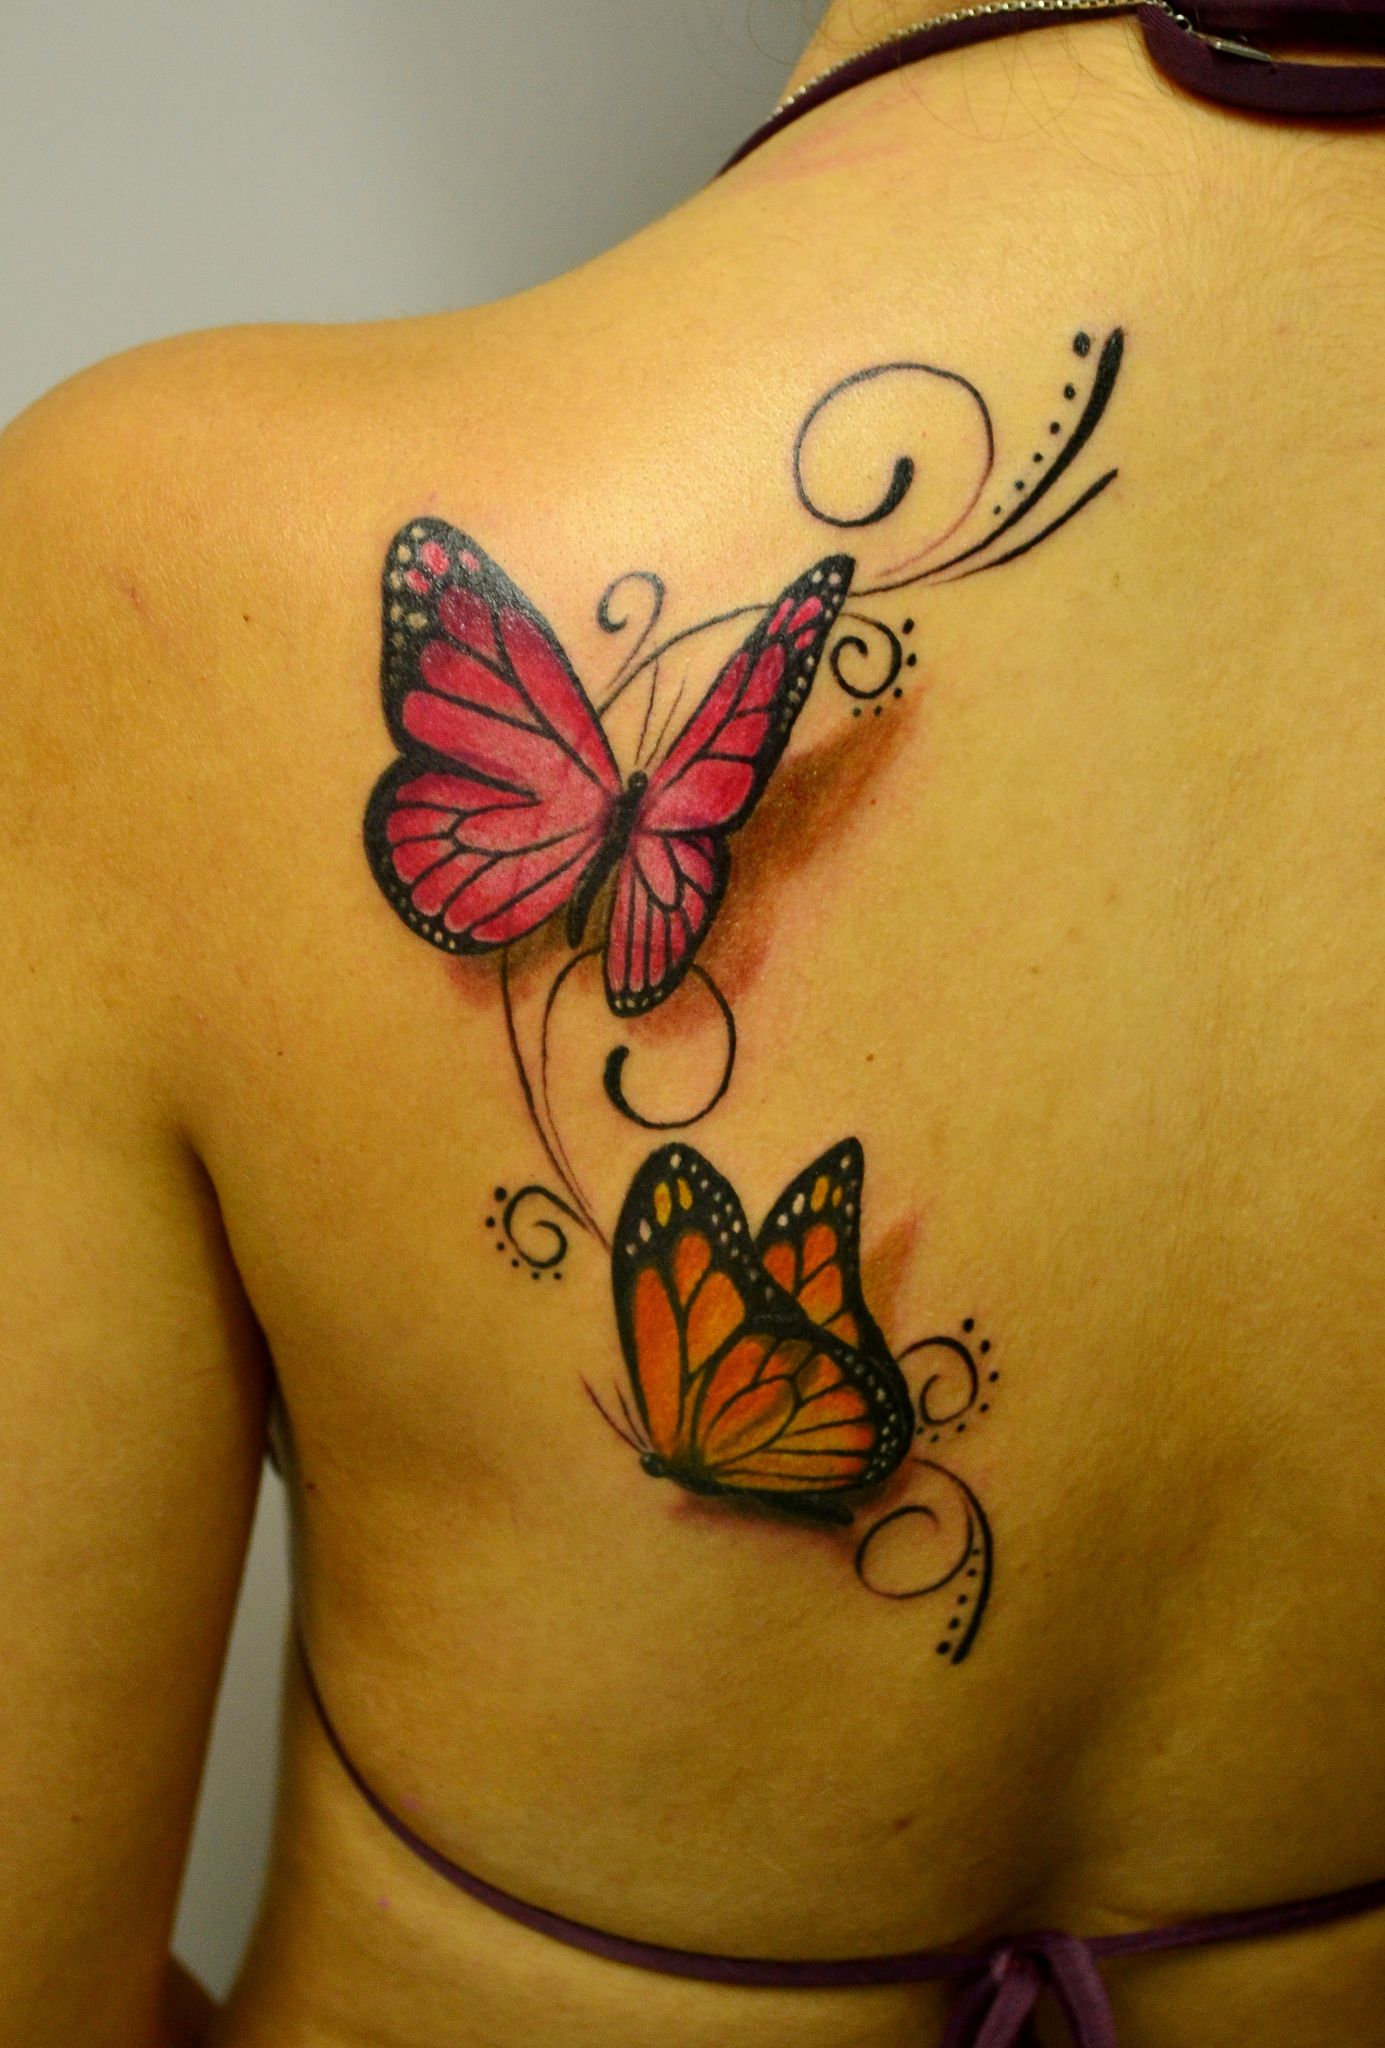 35 amazing tattoos for women with meaning - 35 Amazing 3d Tattoo Designs